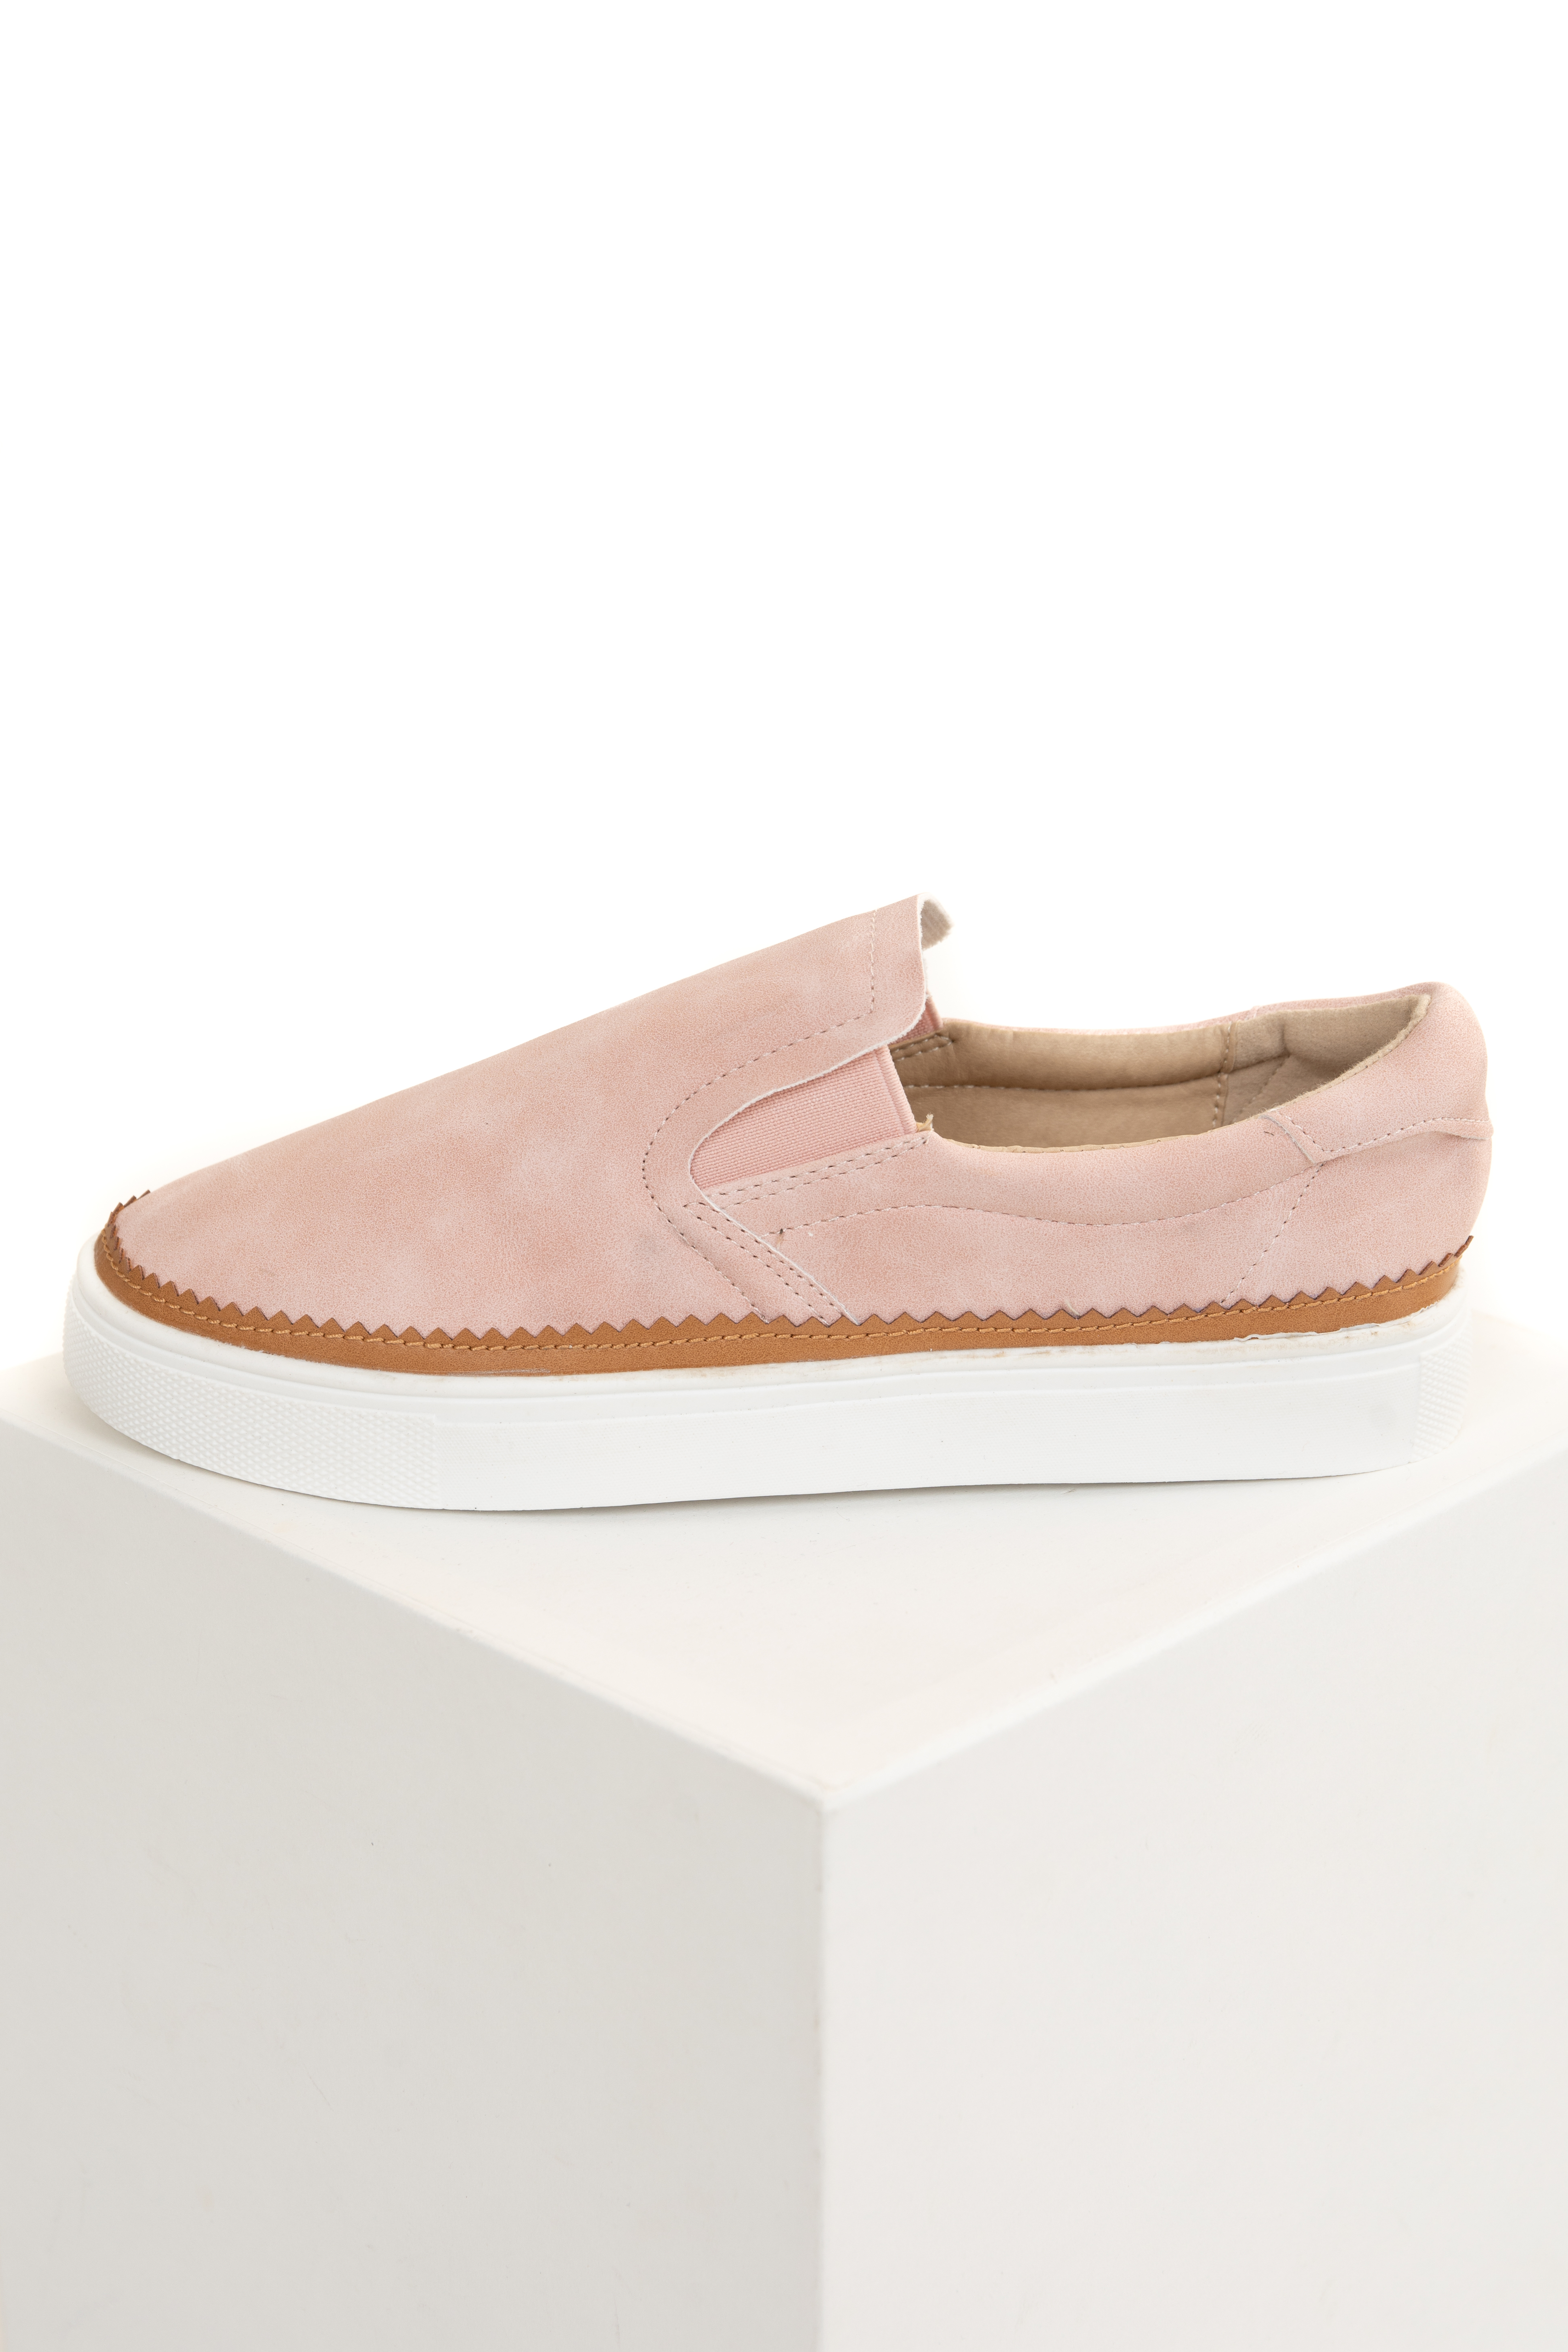 Blush Pink Faux Suede Textured Slip On Sneakers